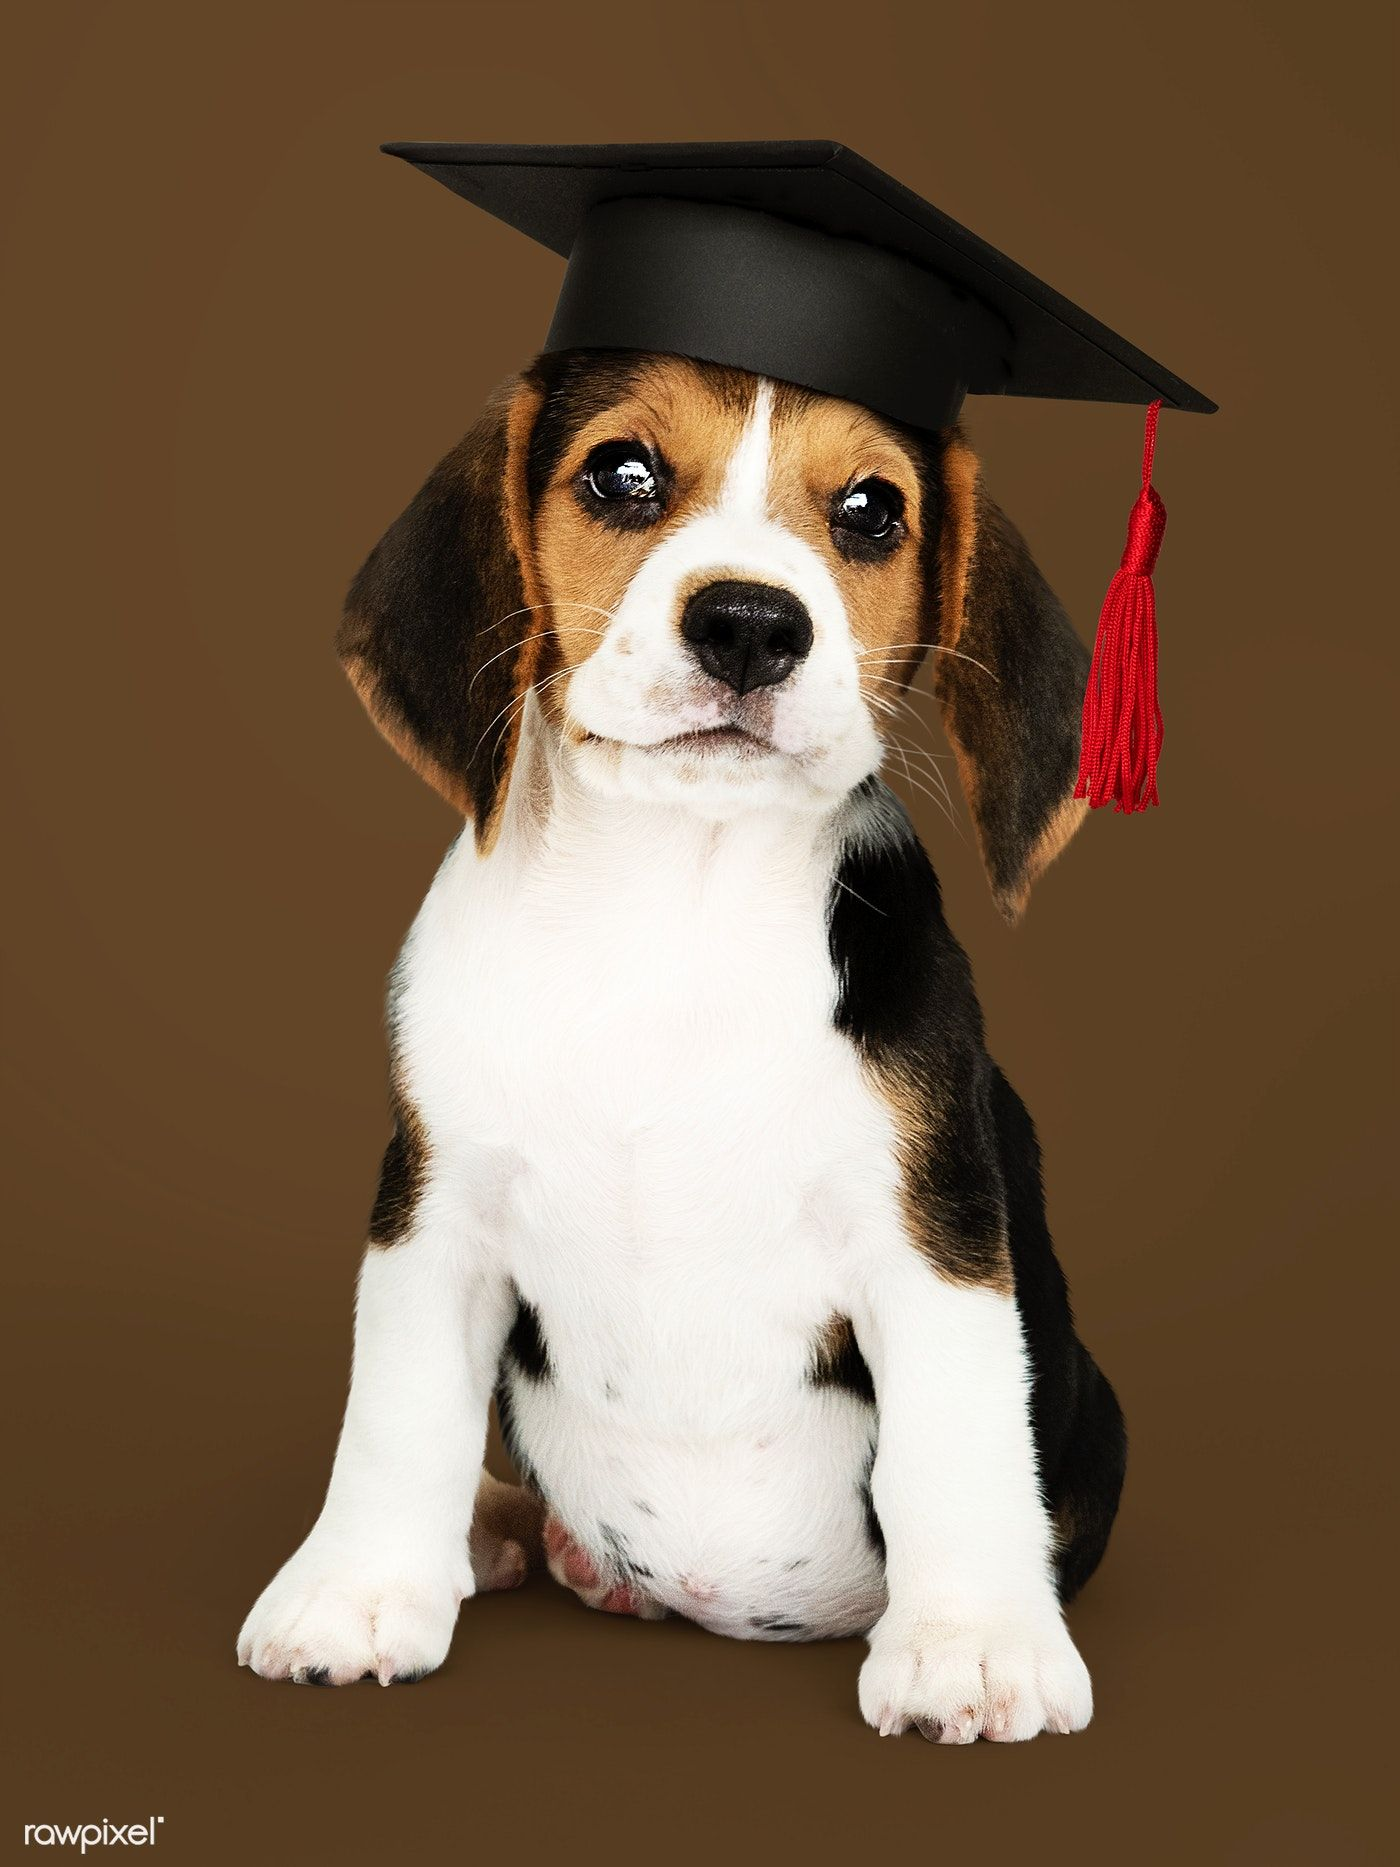 Download Premium Image Of Cute Beagle Puppy In A Graduation Cap